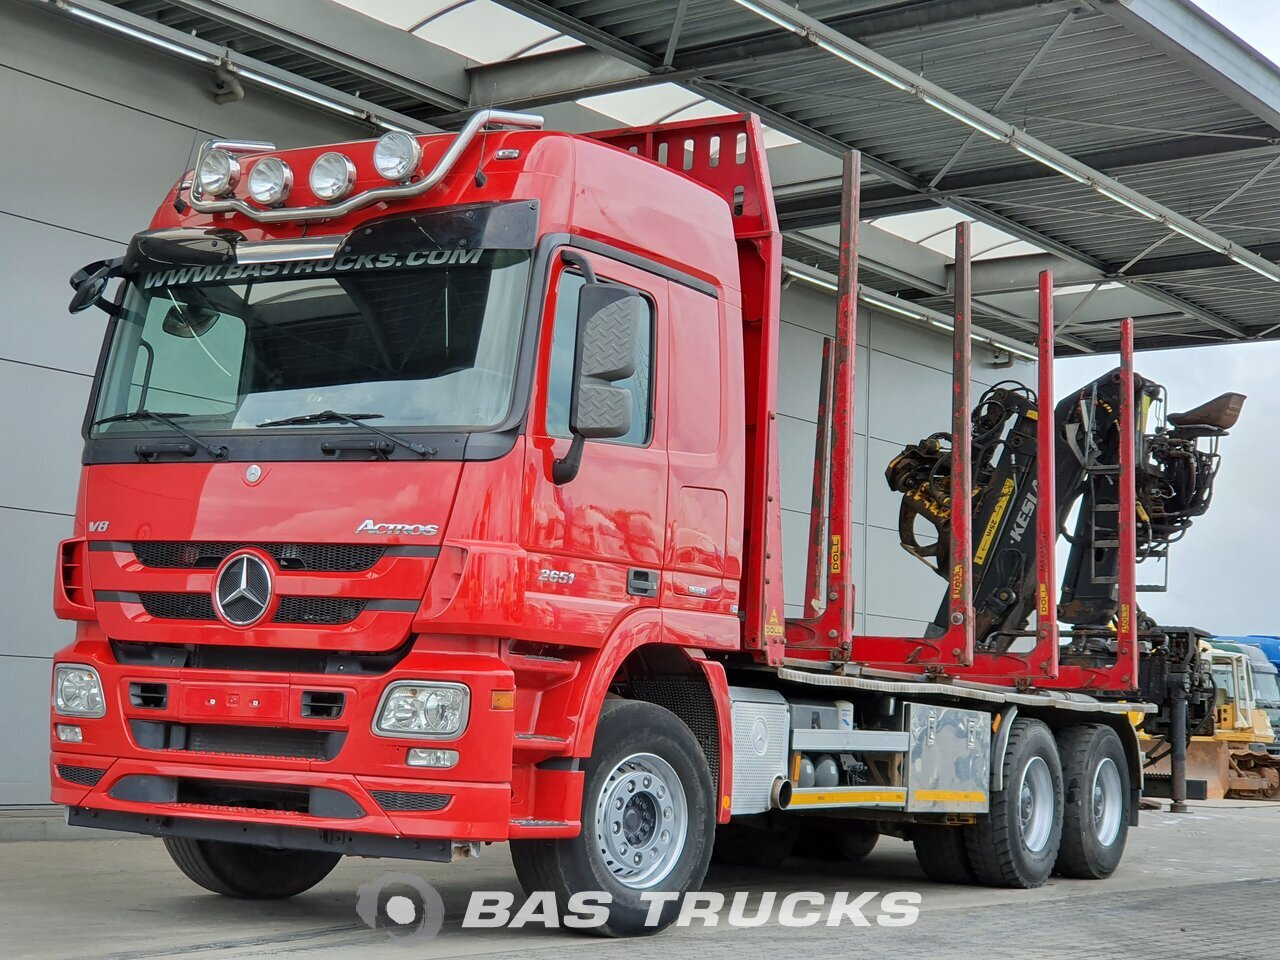 For sale at BAS Trucks: Mercedes Actros 2651 L 6X4 11/2013